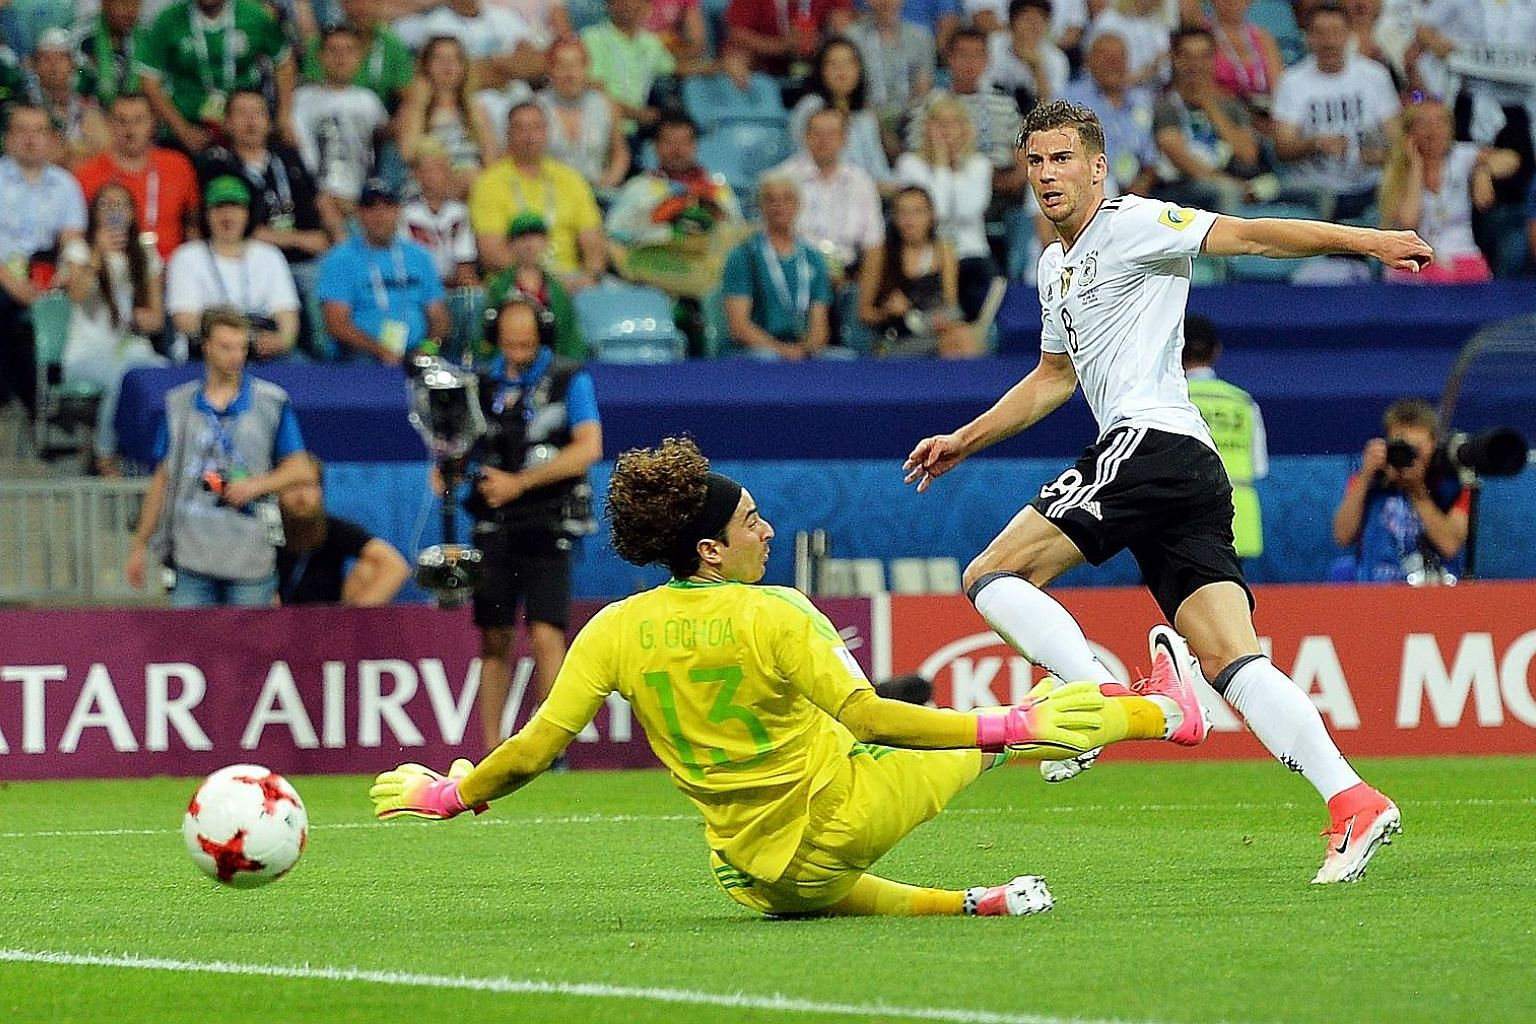 Leon Goretzka scoring his second goal past Mexico custodian Guillermo Ochoa in Germany's 4-1 win. He is eager to play Chile again after the 1-1 group-stage draw.